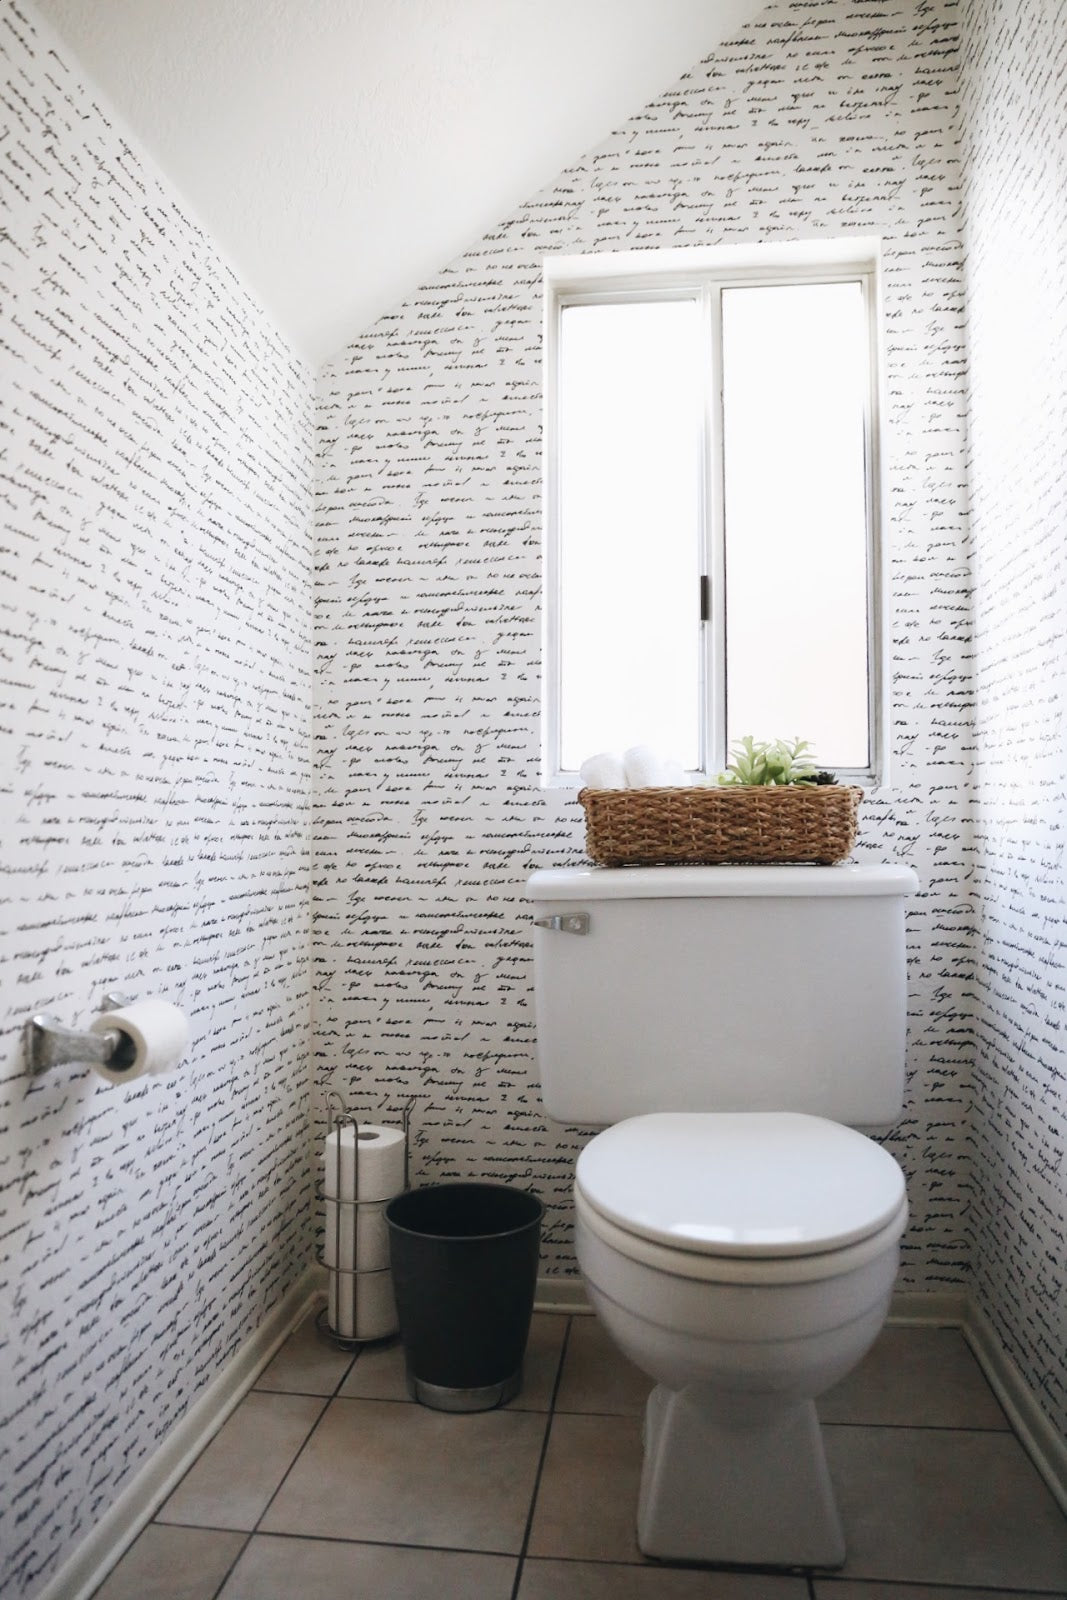 Go Bold In Small Spaces With Removable Wallpaper